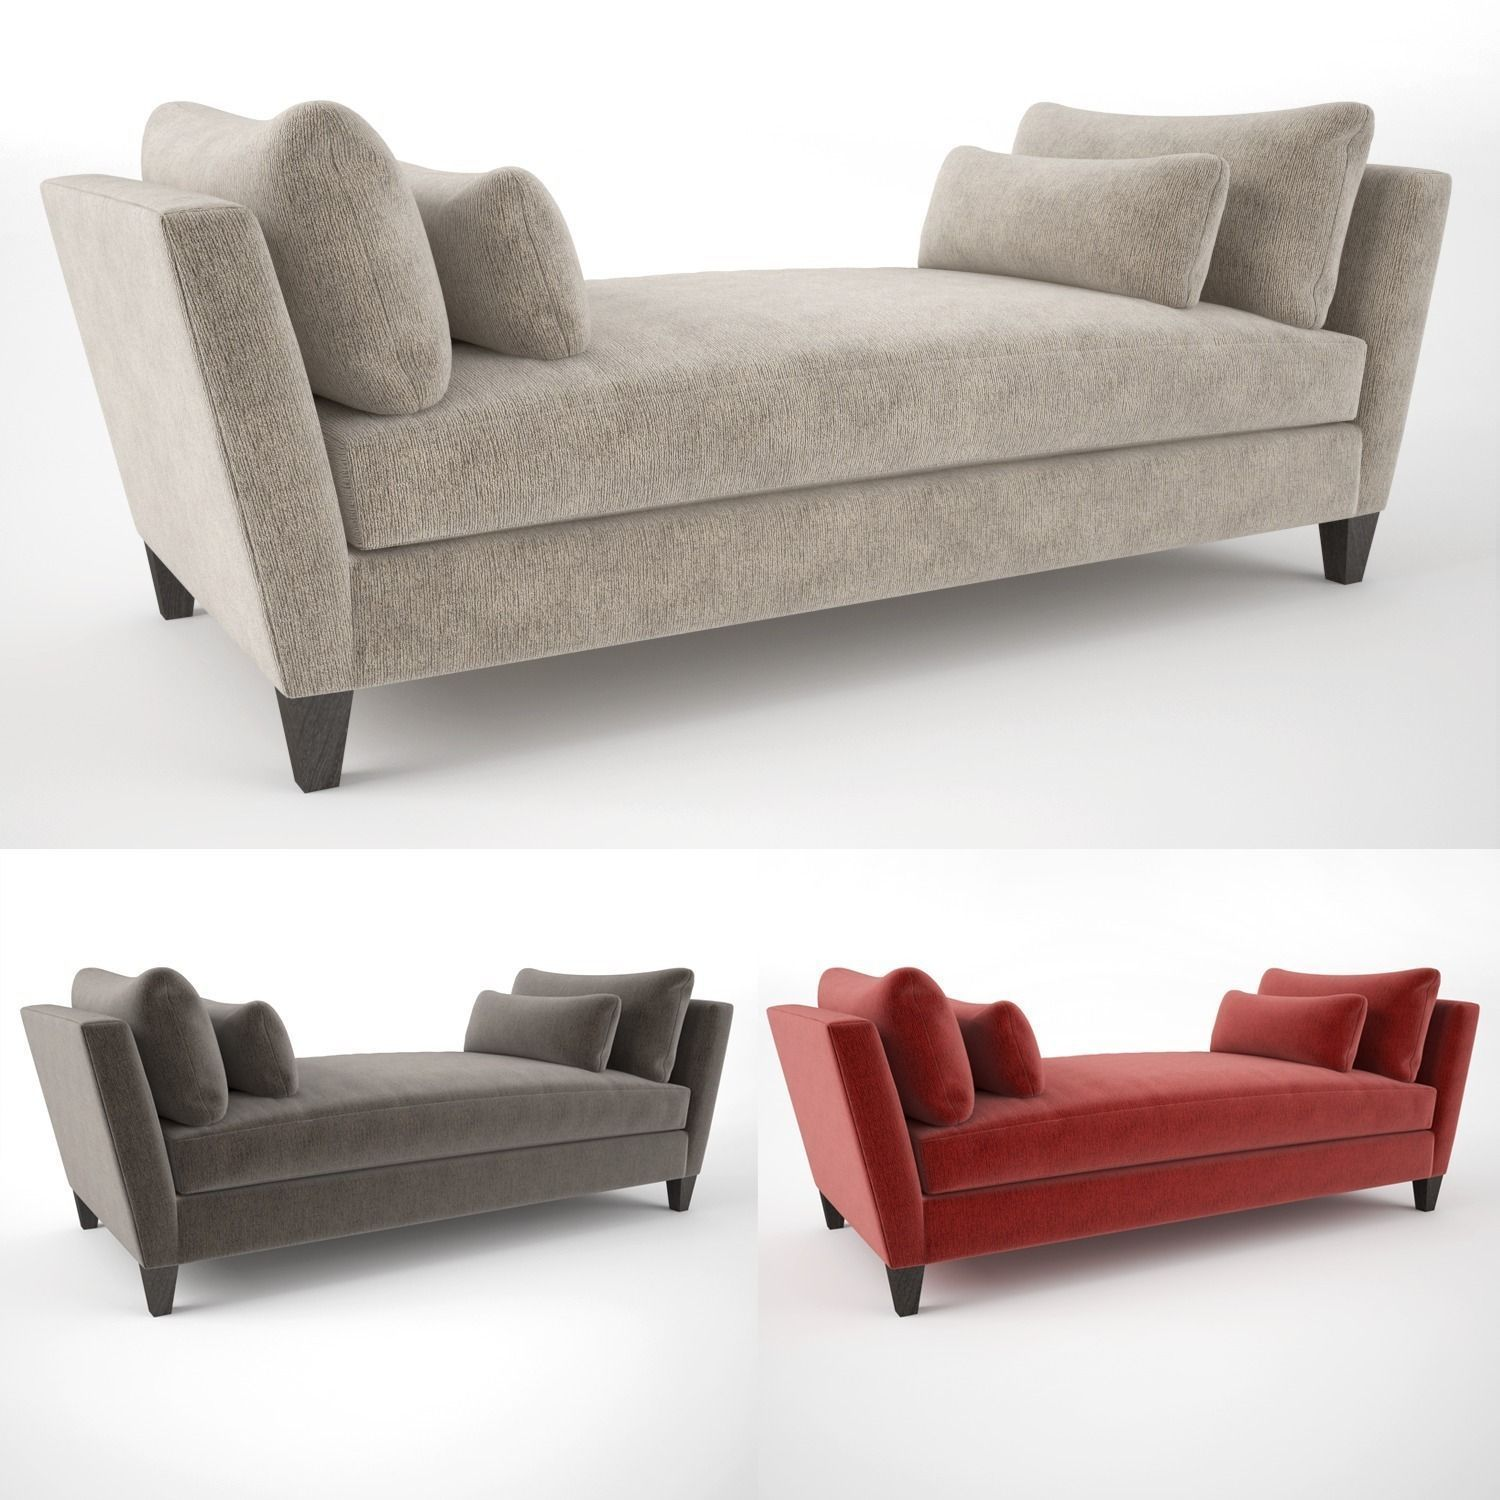 z gallerie bleeker sofa reviews vintage retro style stunning patchwork bed daybed crate and barrel marlowe model